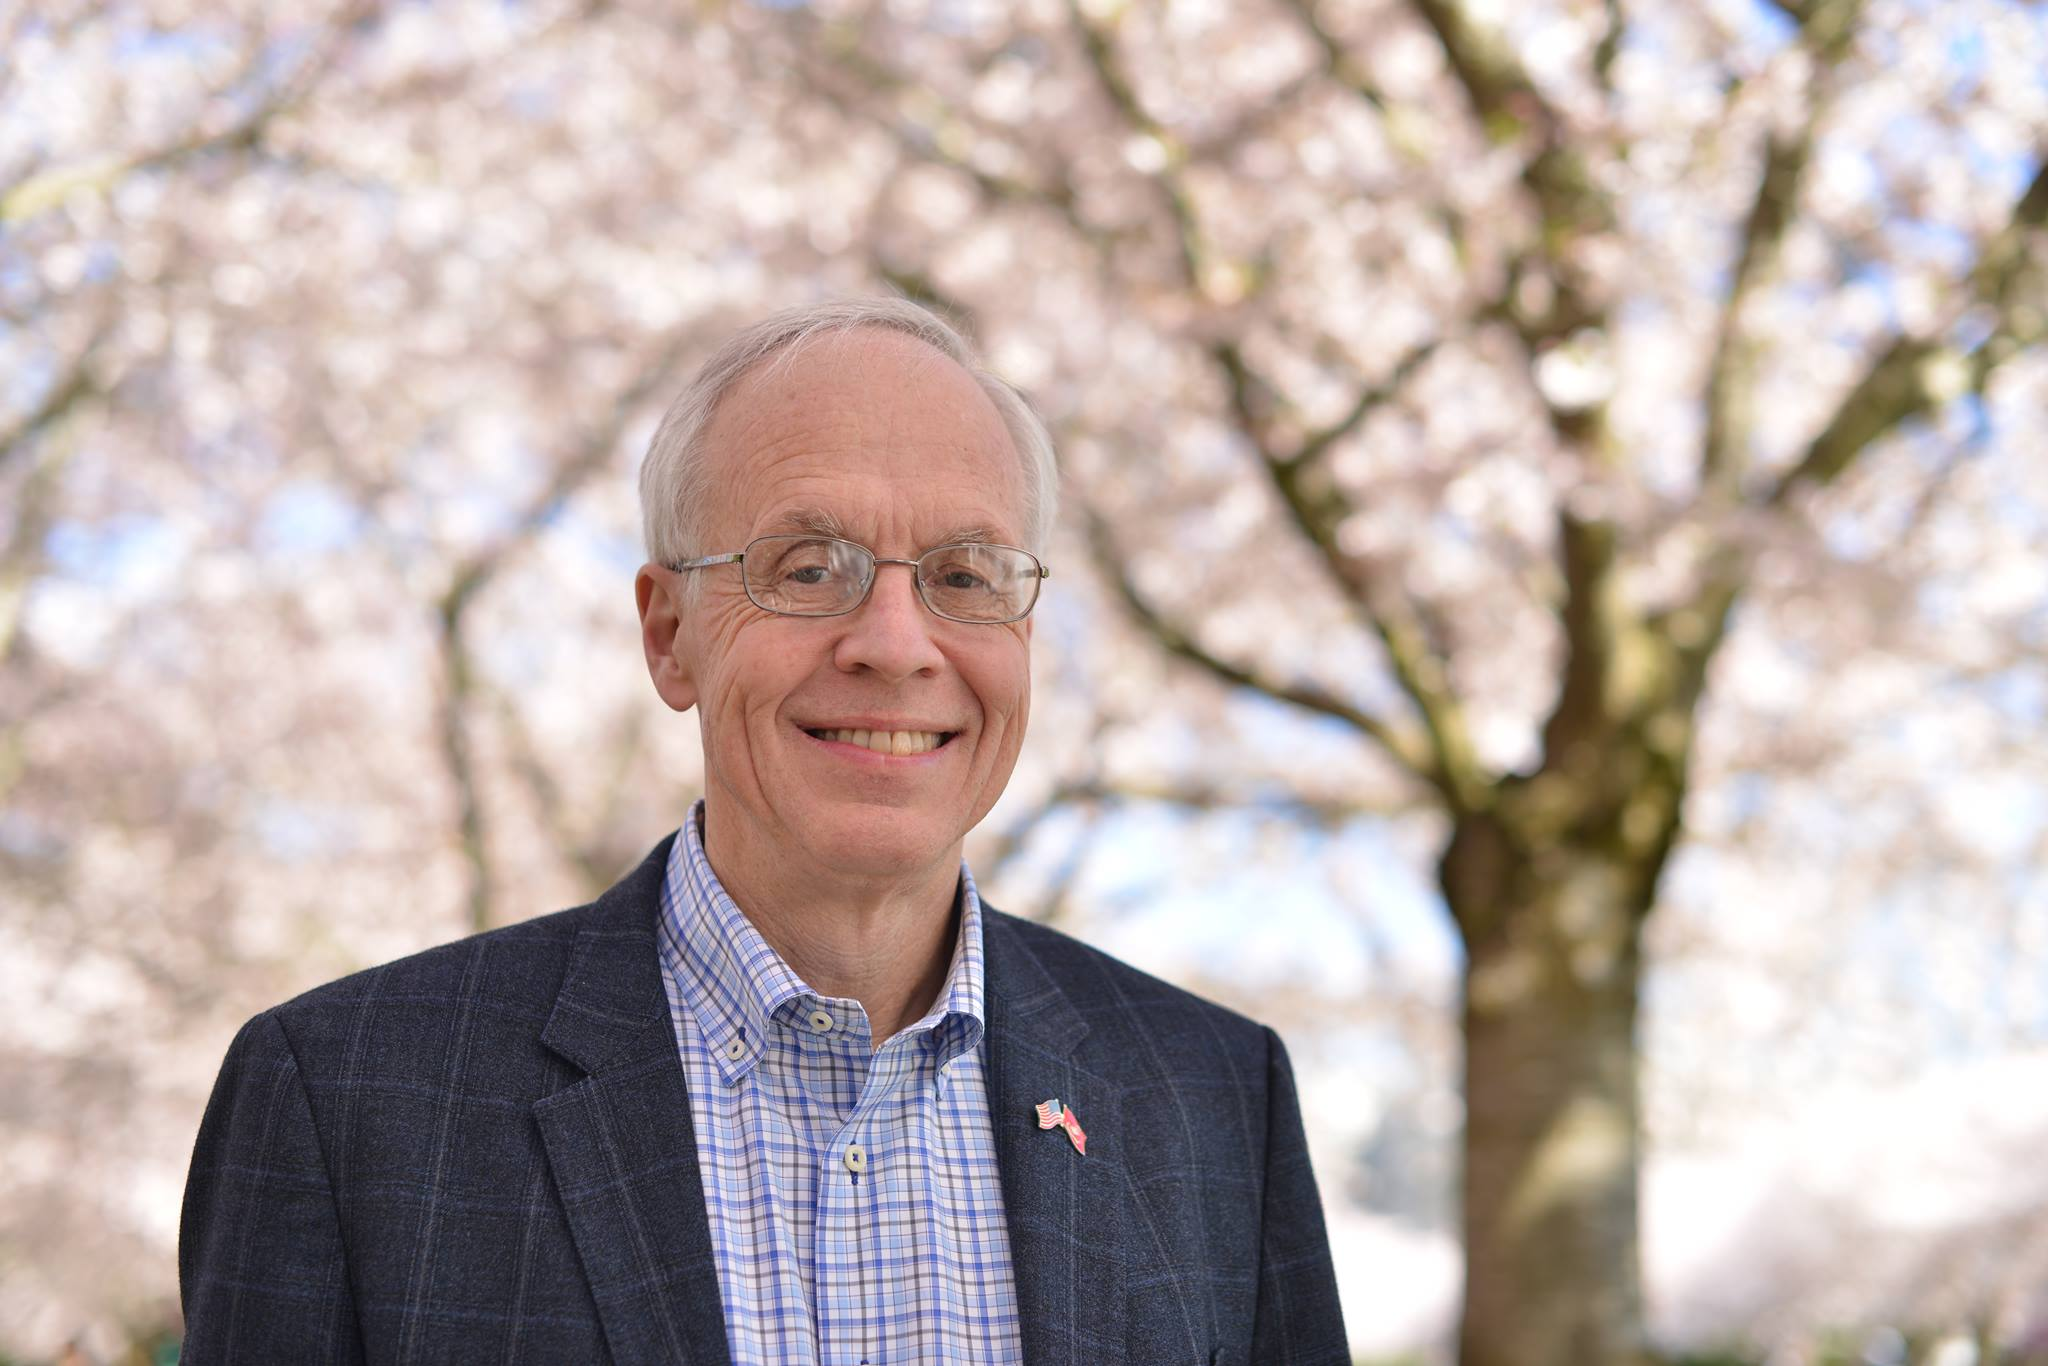 Bud Pierce standing outside in front of cherry blossoms